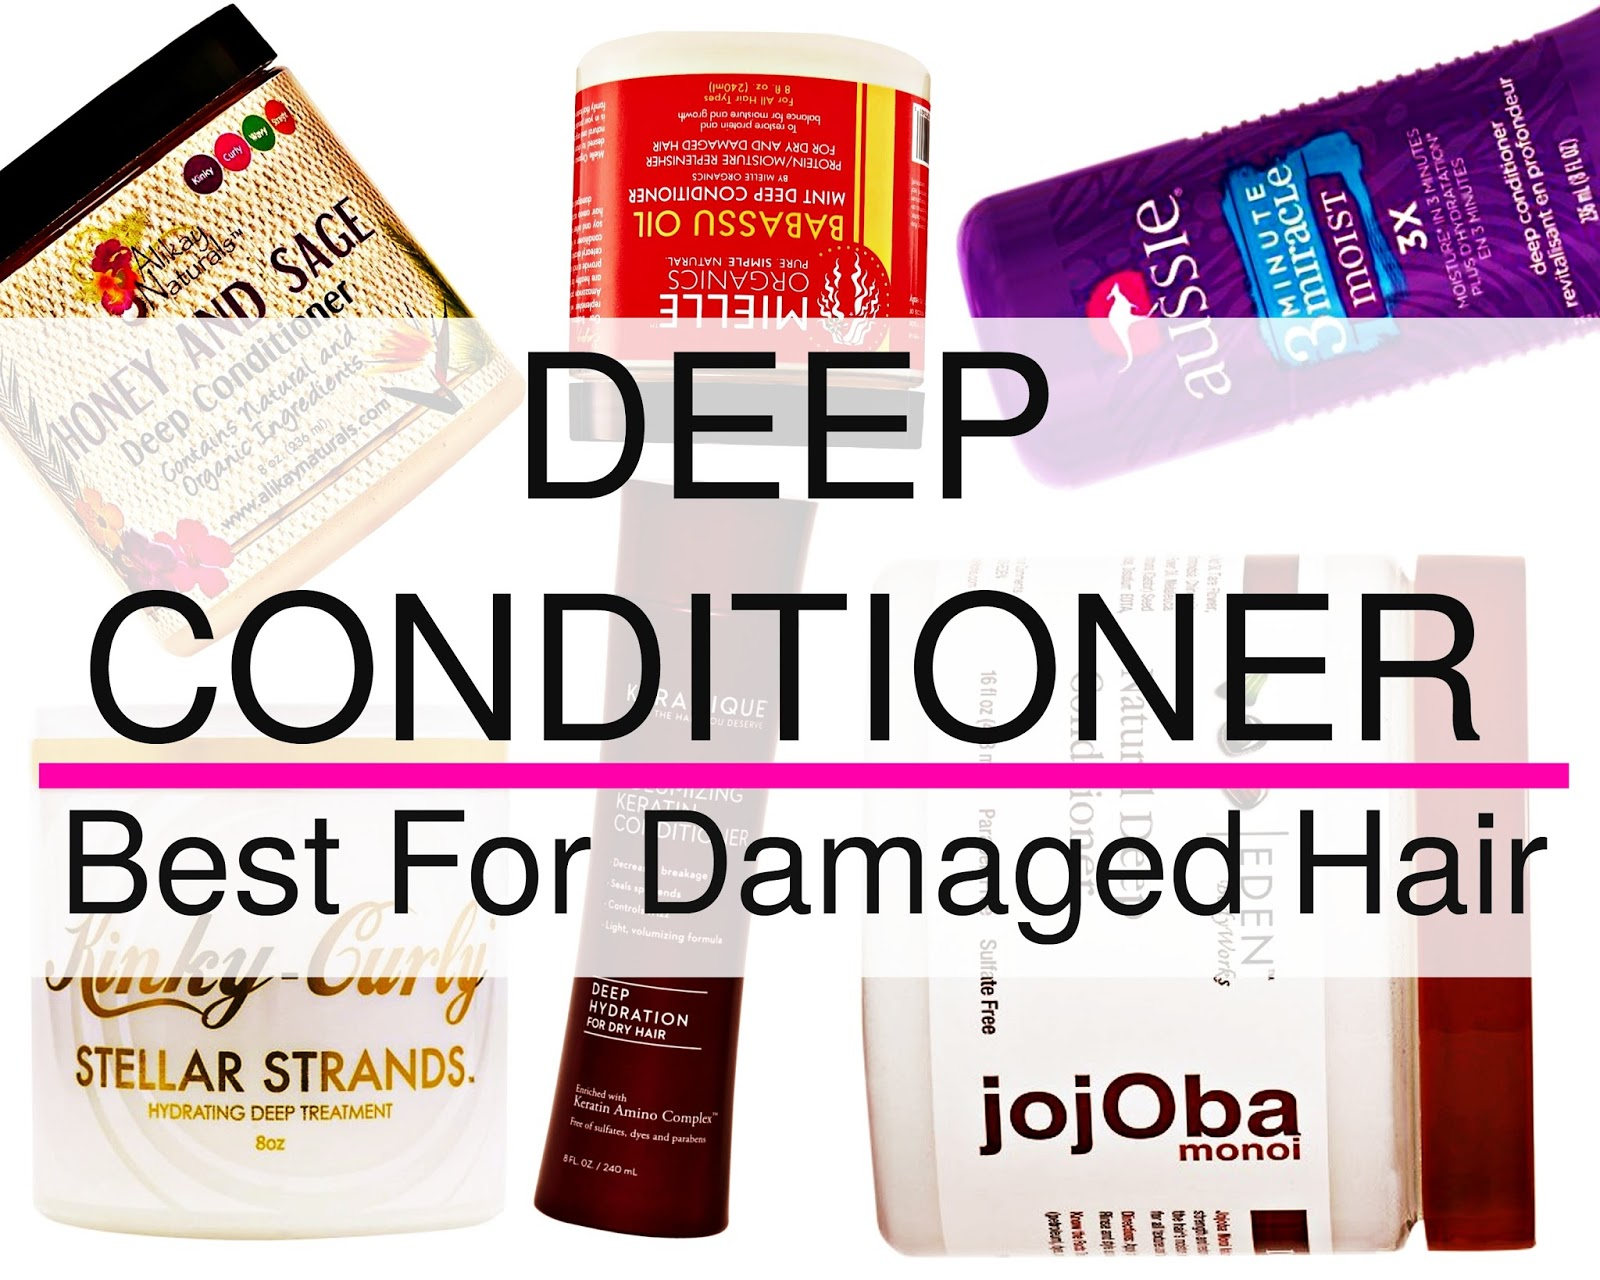 Click here to buy MIXED CHICKS Deep Conditioner, one of the best deep conditioners for natural hair